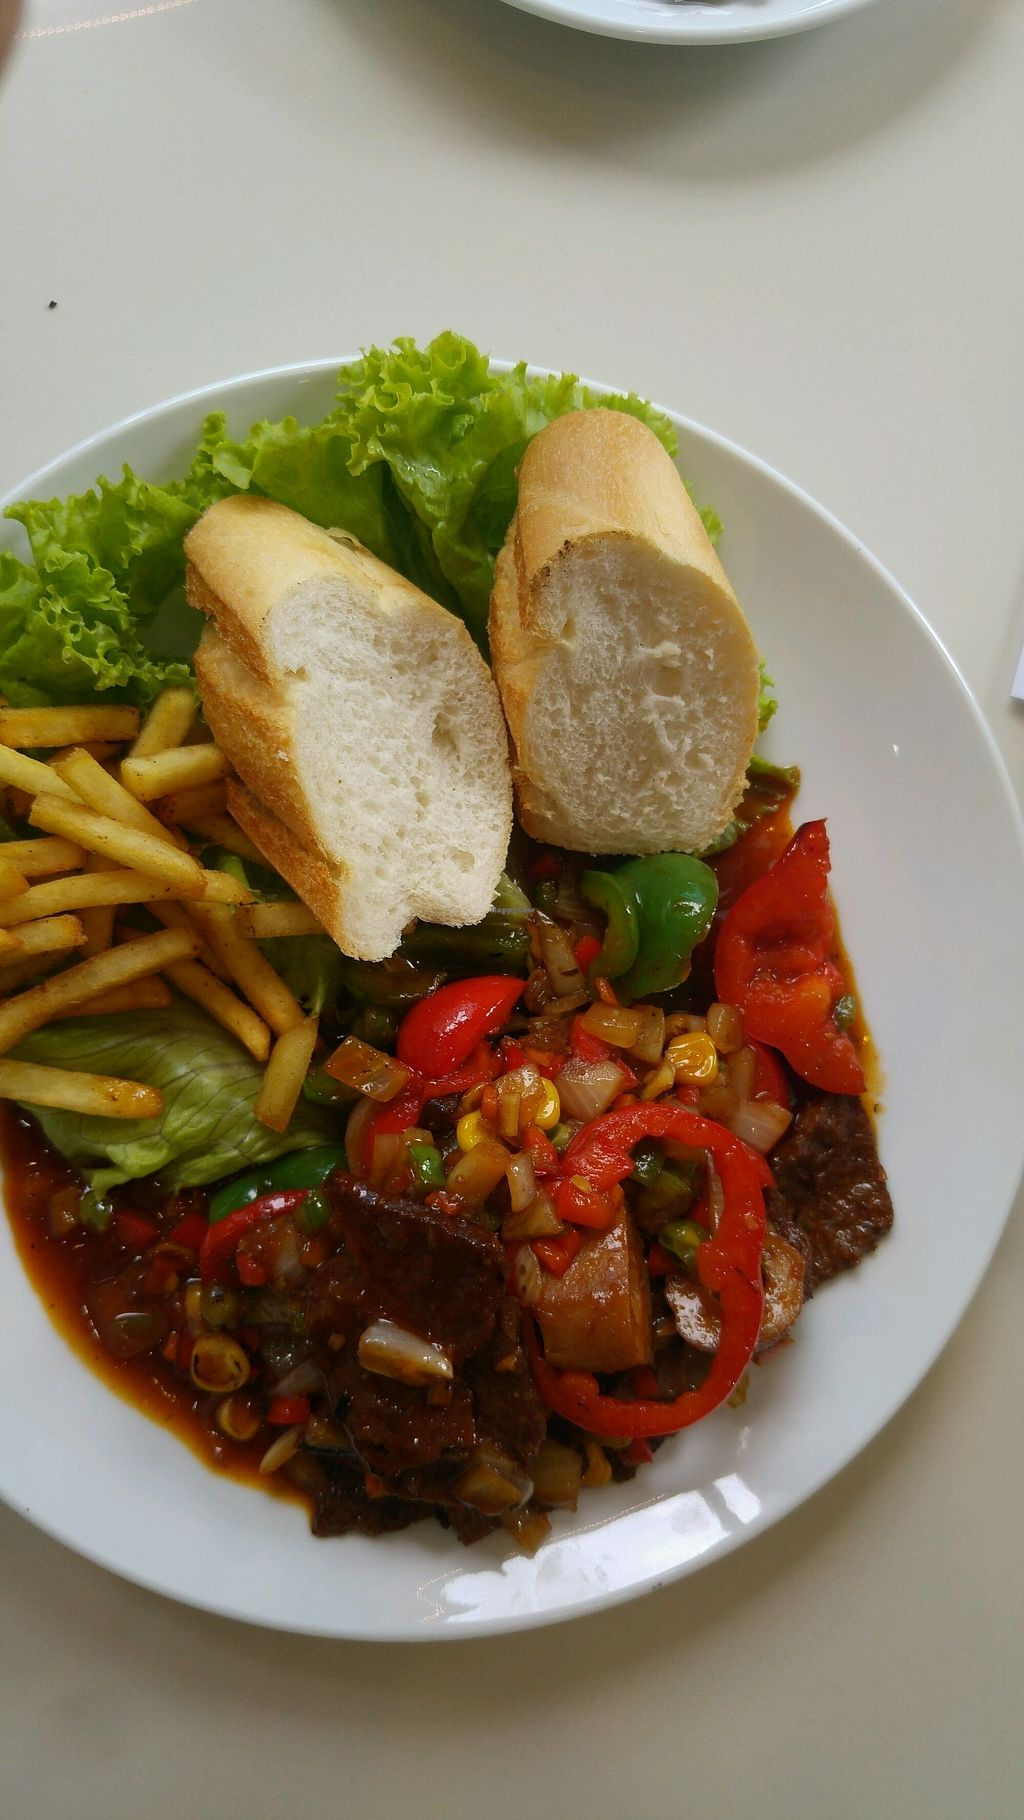 """Photo of Thien Cung - Loving Hut  by <a href=""""/members/profile/daveVN"""">daveVN</a> <br/>stir-fried """"enlightened steak"""" <br/> September 19, 2017  - <a href='/contact/abuse/image/100280/305998'>Report</a>"""